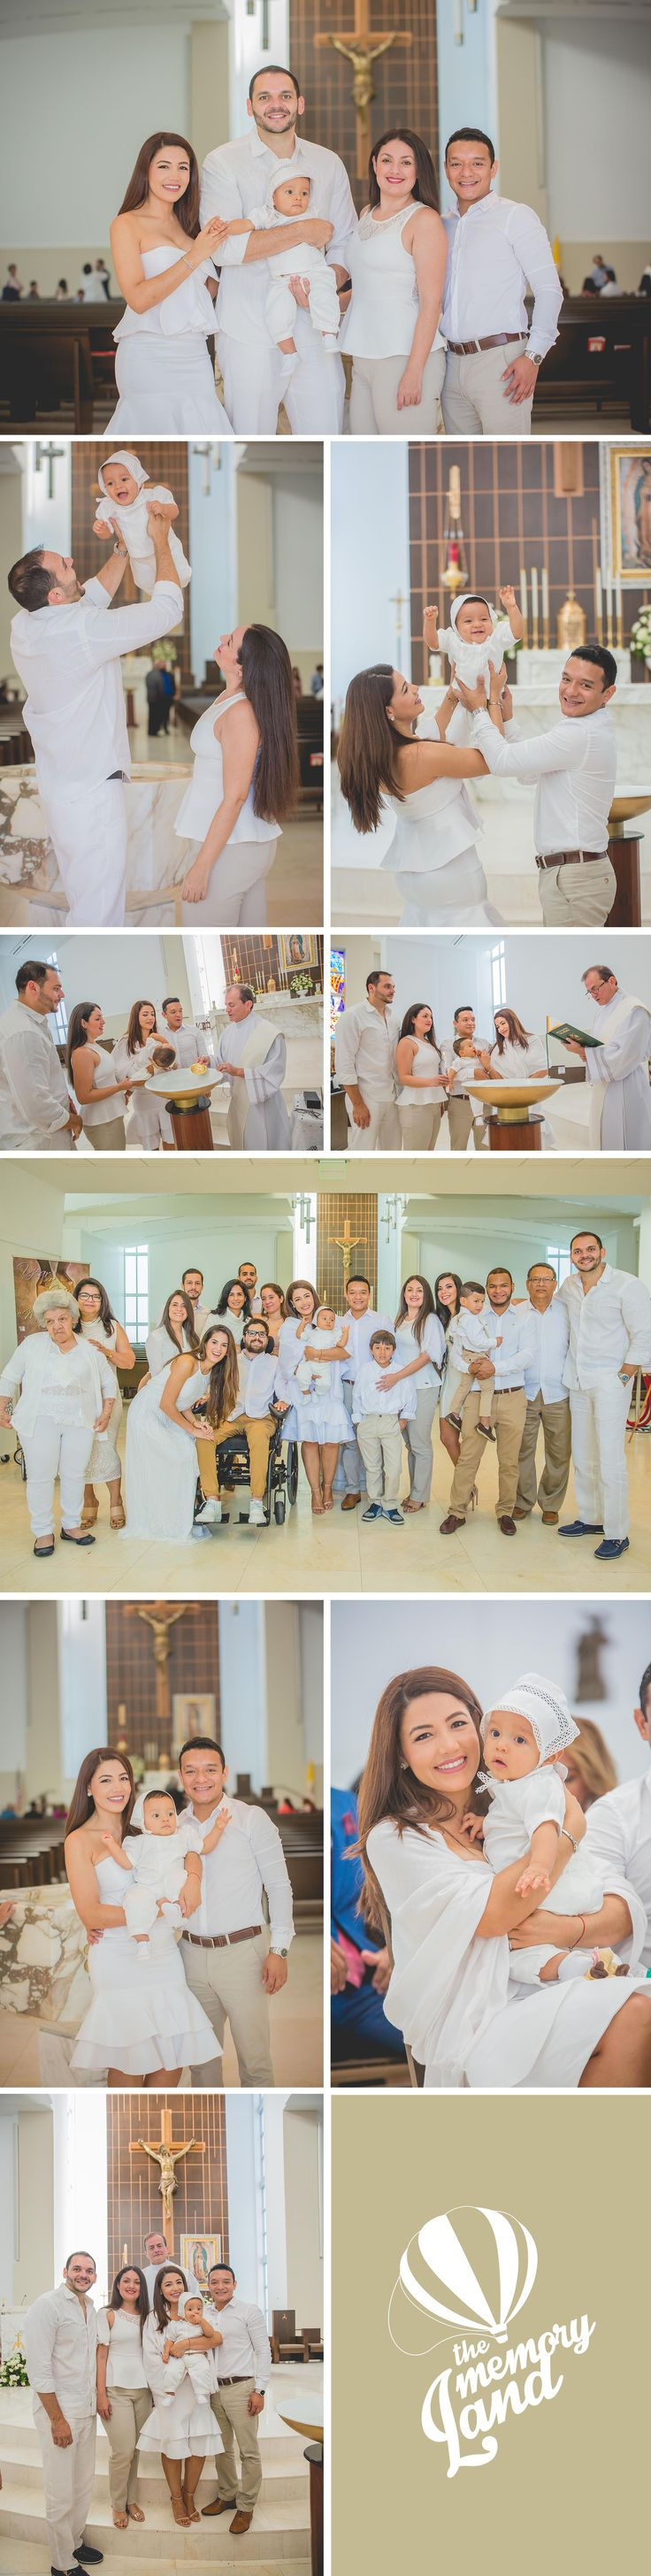 Baptisms Time. Family.Celebration. Baptisms Photography. Godparents Photography. Baptisms Ideas. Baptism Poses Picture Ideas. Family Portrait. Check out more of our work :) www.thememoryland.com